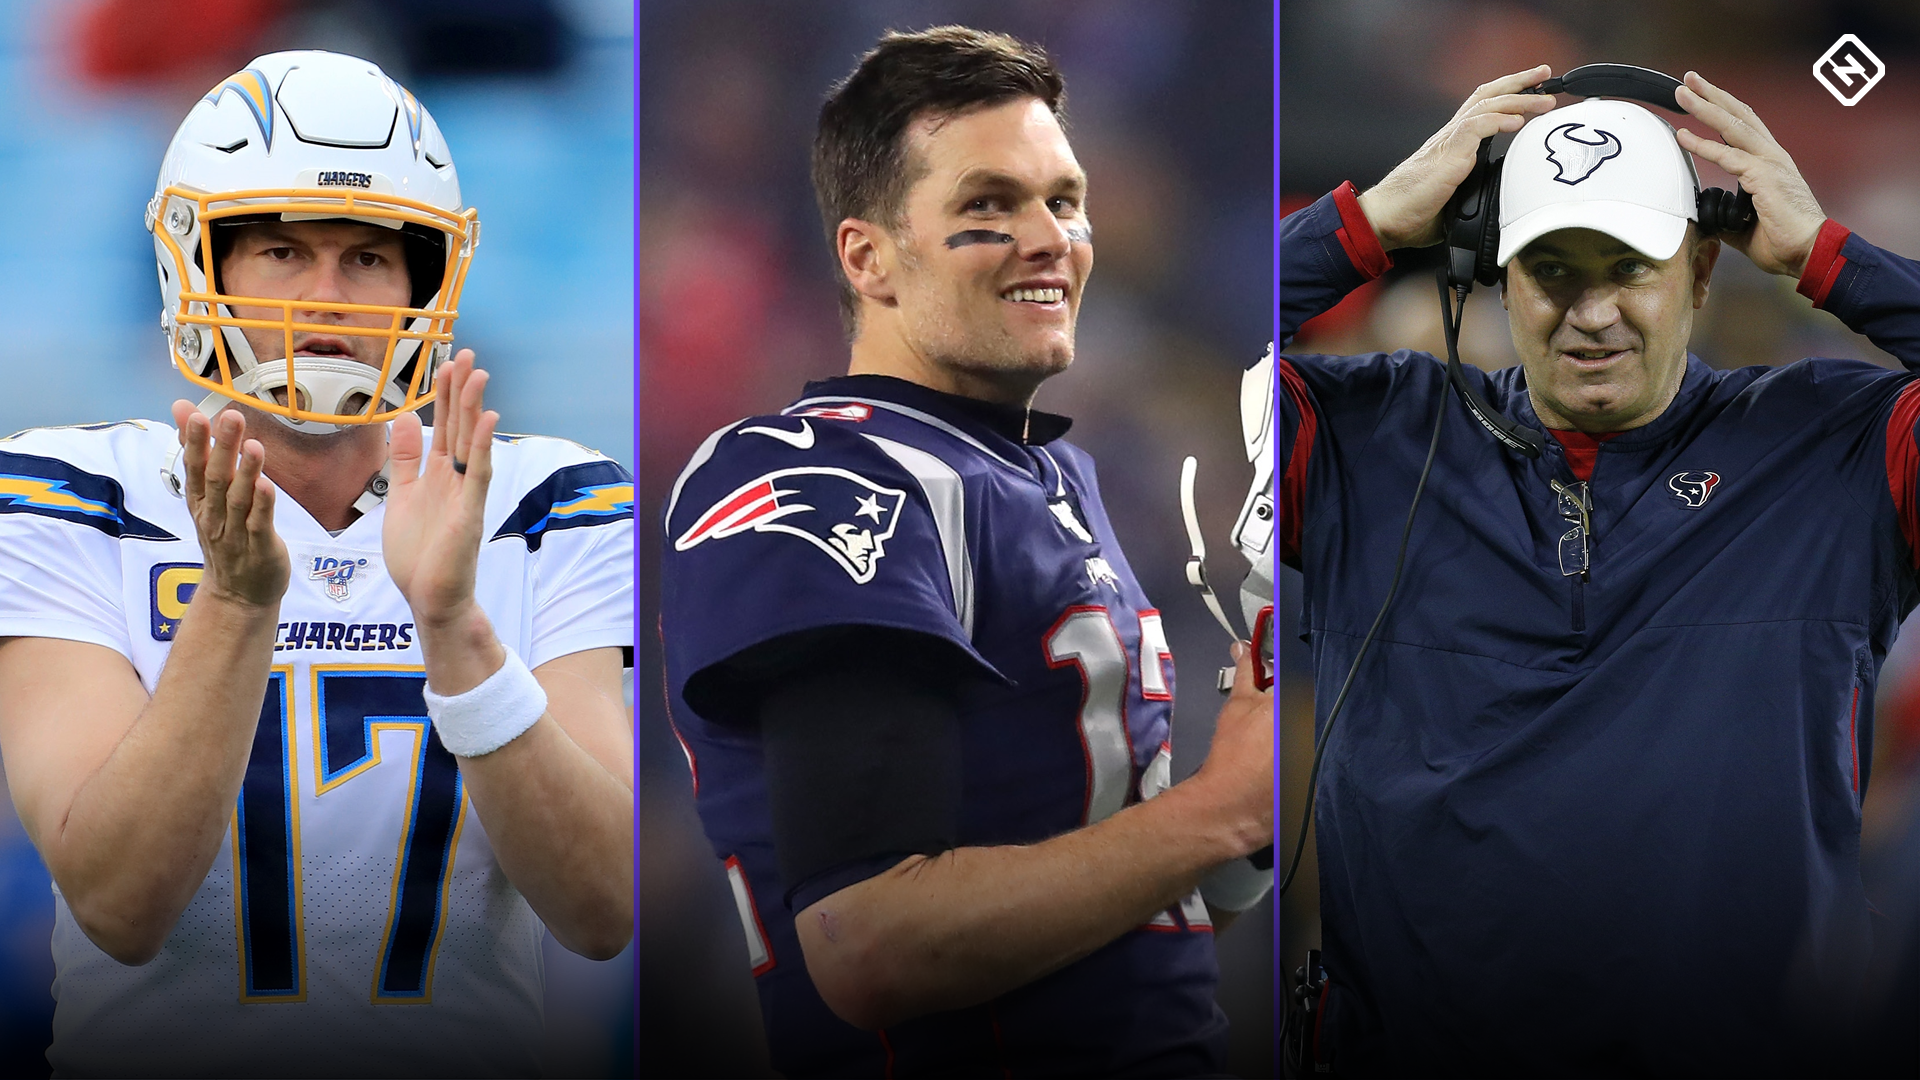 NFL free agency winners & losers: Tom Brady better off with Buccaneers; Rams dismantled; Bears, Texans faceplant - Yahoo News Canada